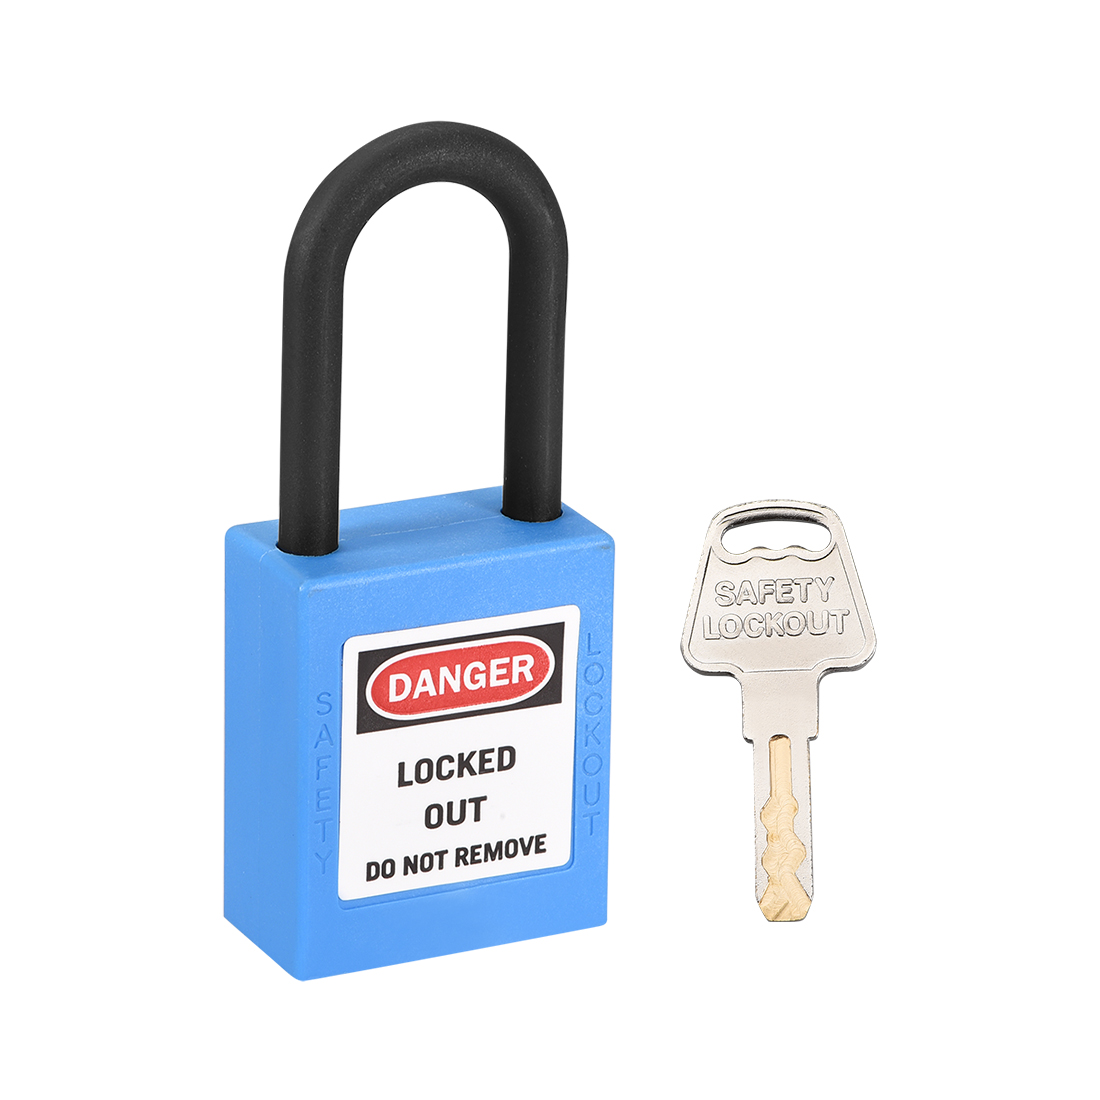 Lockout Tagout Locks, 1-1/2 Inch Shackle Key Alike Safety Padlock Blue